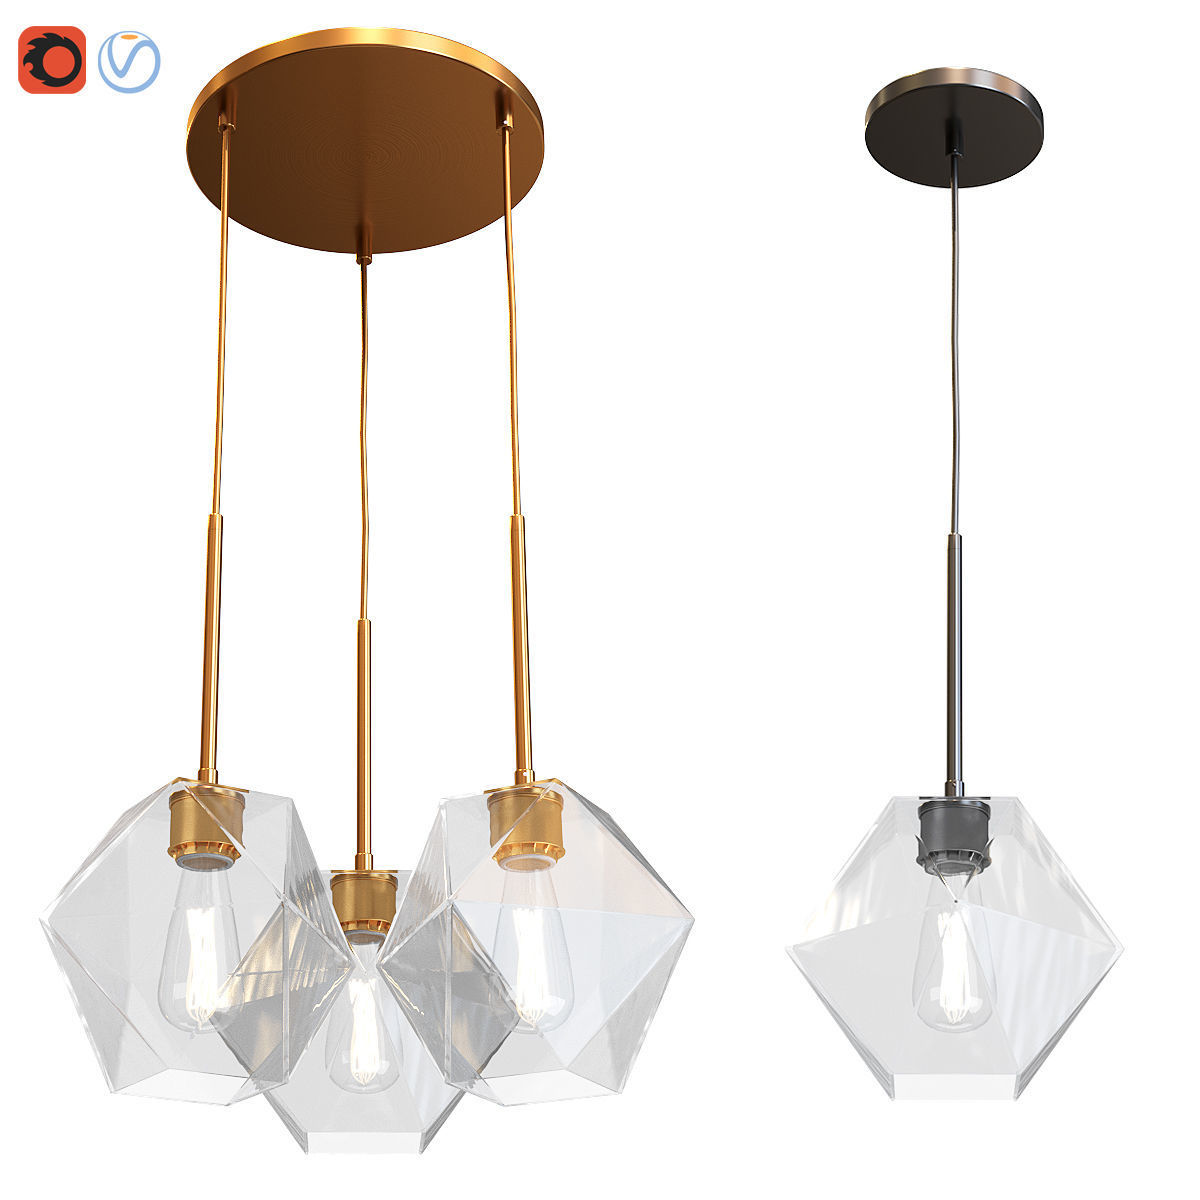 West Elm Sculptural Glass Faceted 3 Light Chandelier Pendant 3d Model